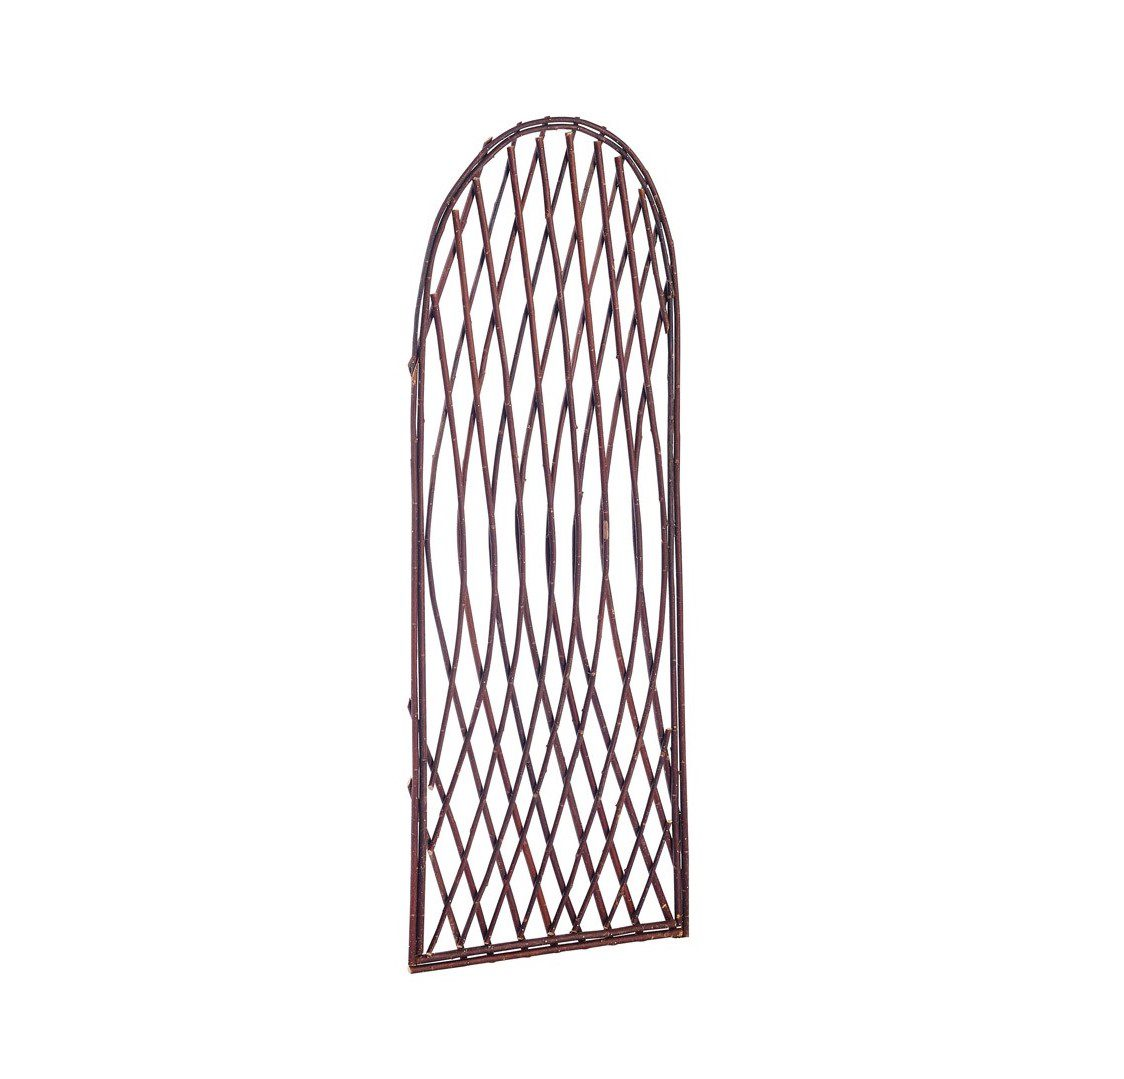 GARDMAN 1.8M X 0.6M FRAMED WILLOW LATTICE TRELLIS PANEL - CURVED TOP